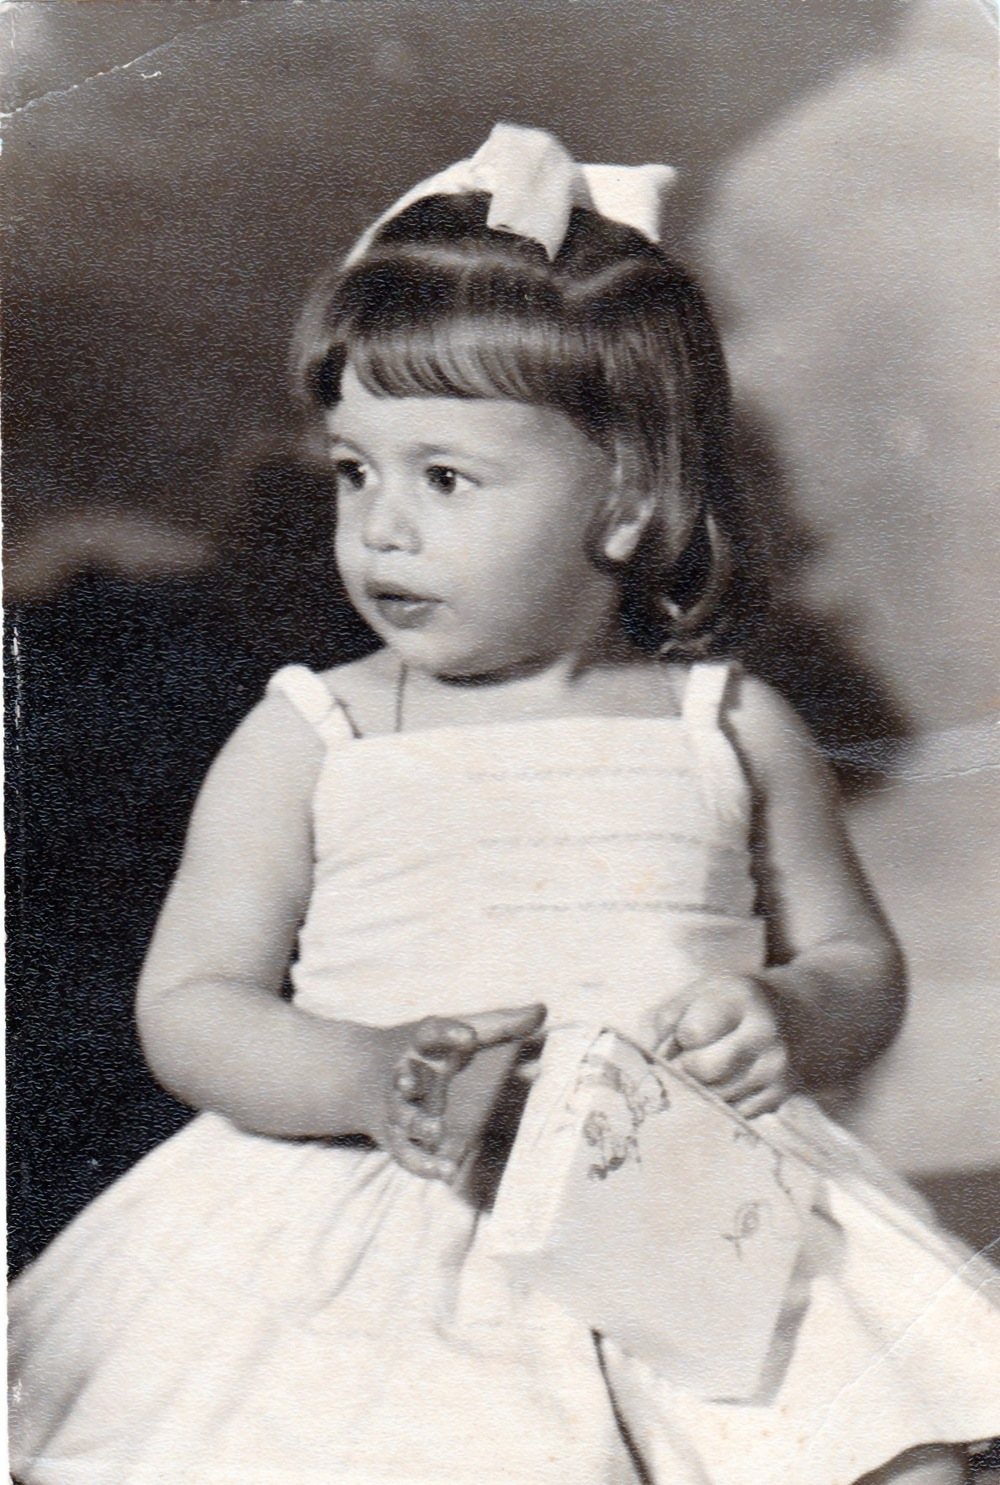 My mother on her second birthday, in Cuba.